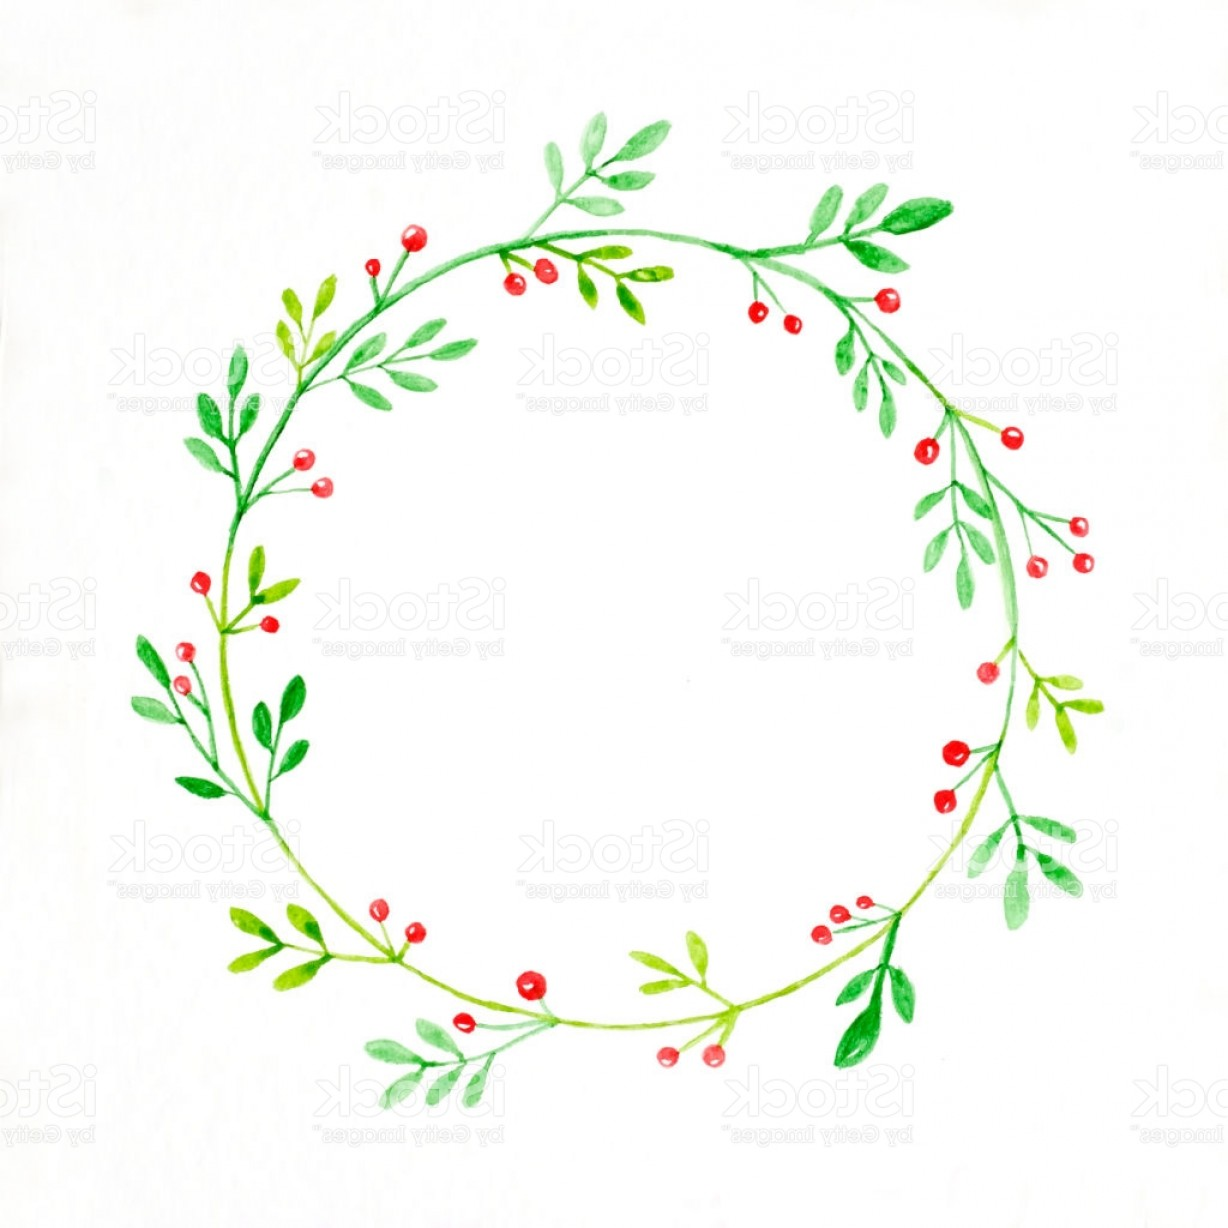 Christmas Wreath Drawing.Wreath Drawing Free Download Best Wreath Drawing On